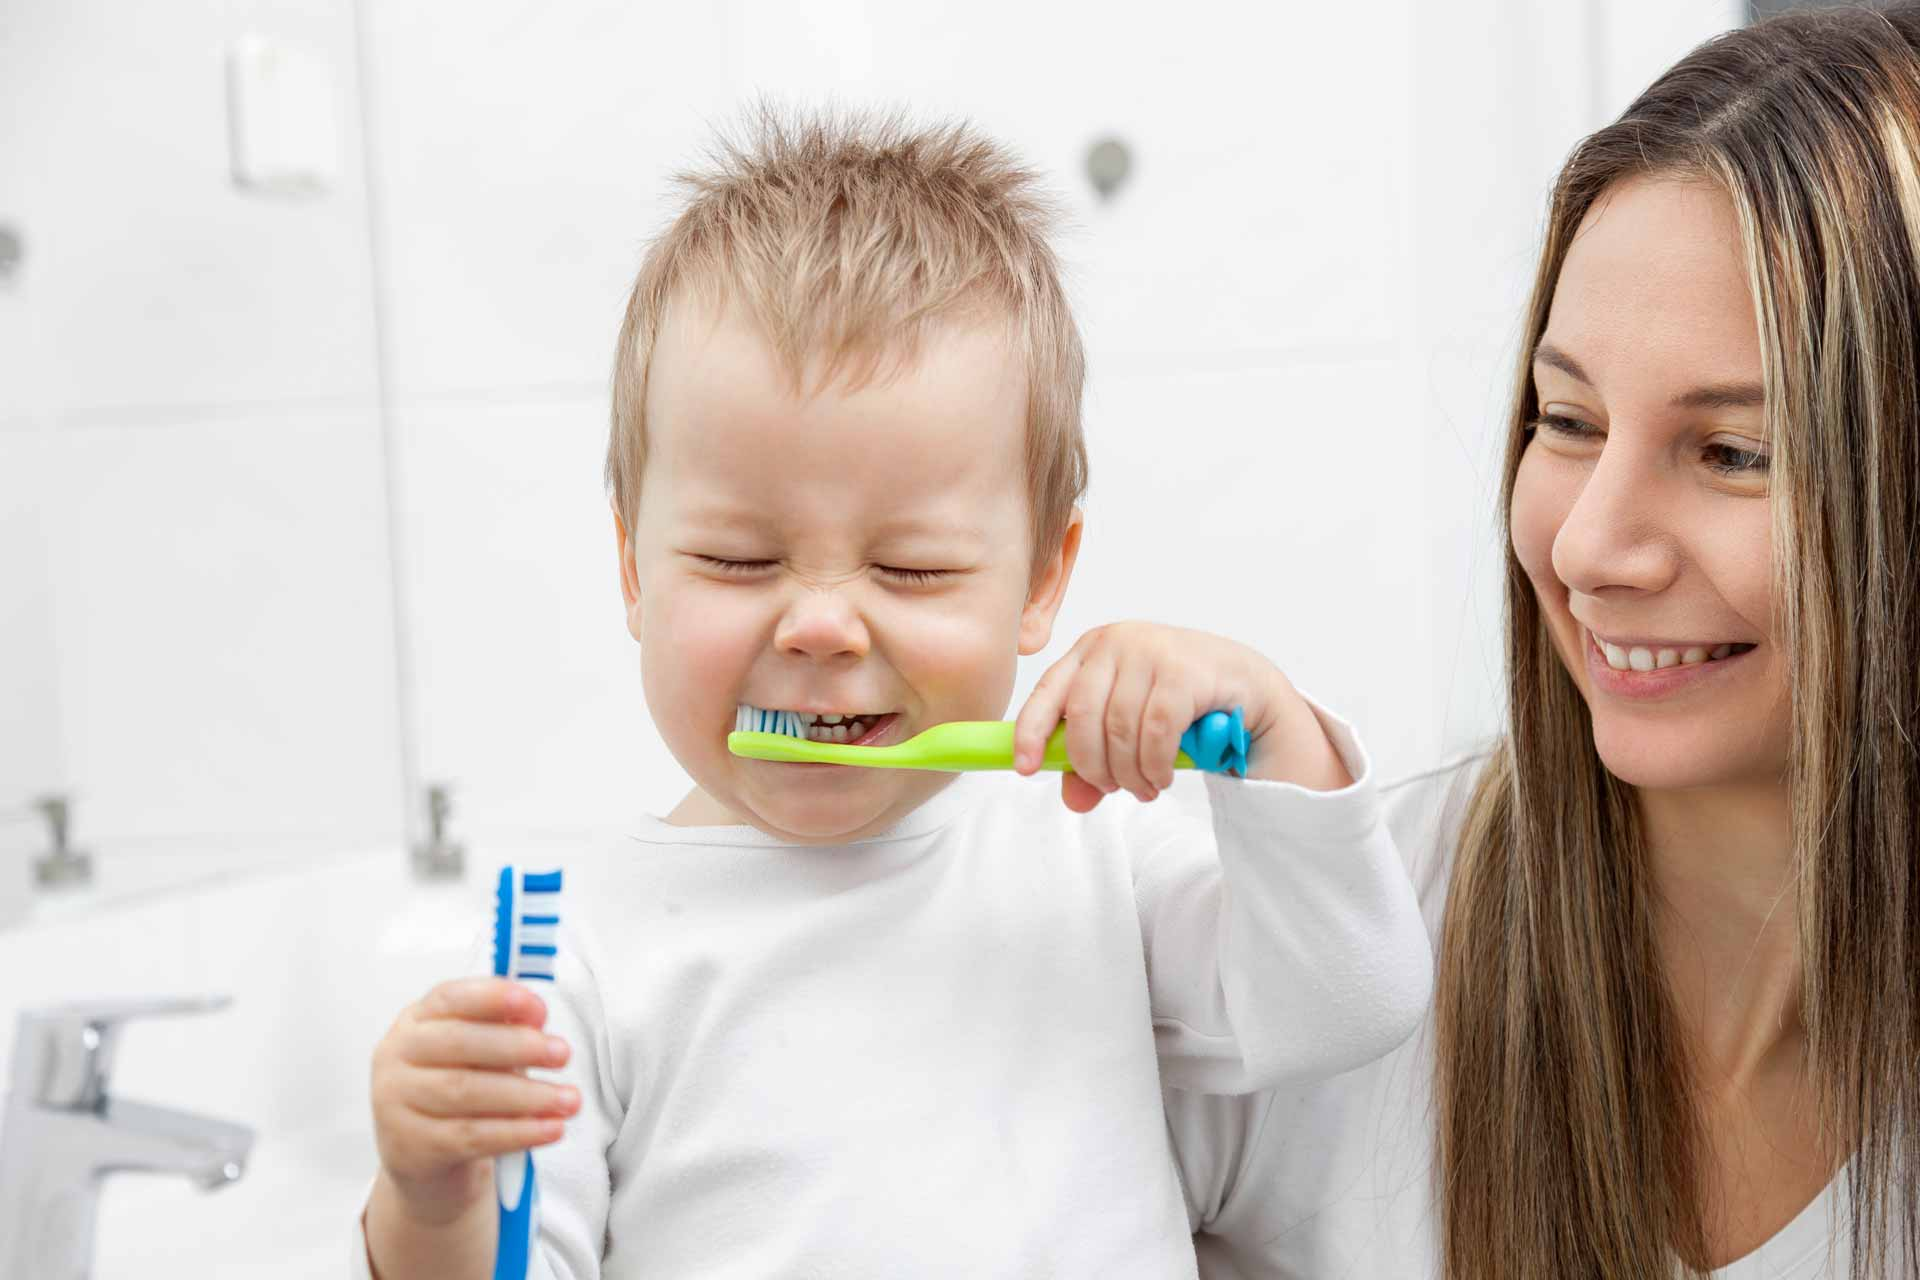 Should You Pull a Loose Baby Tooth?